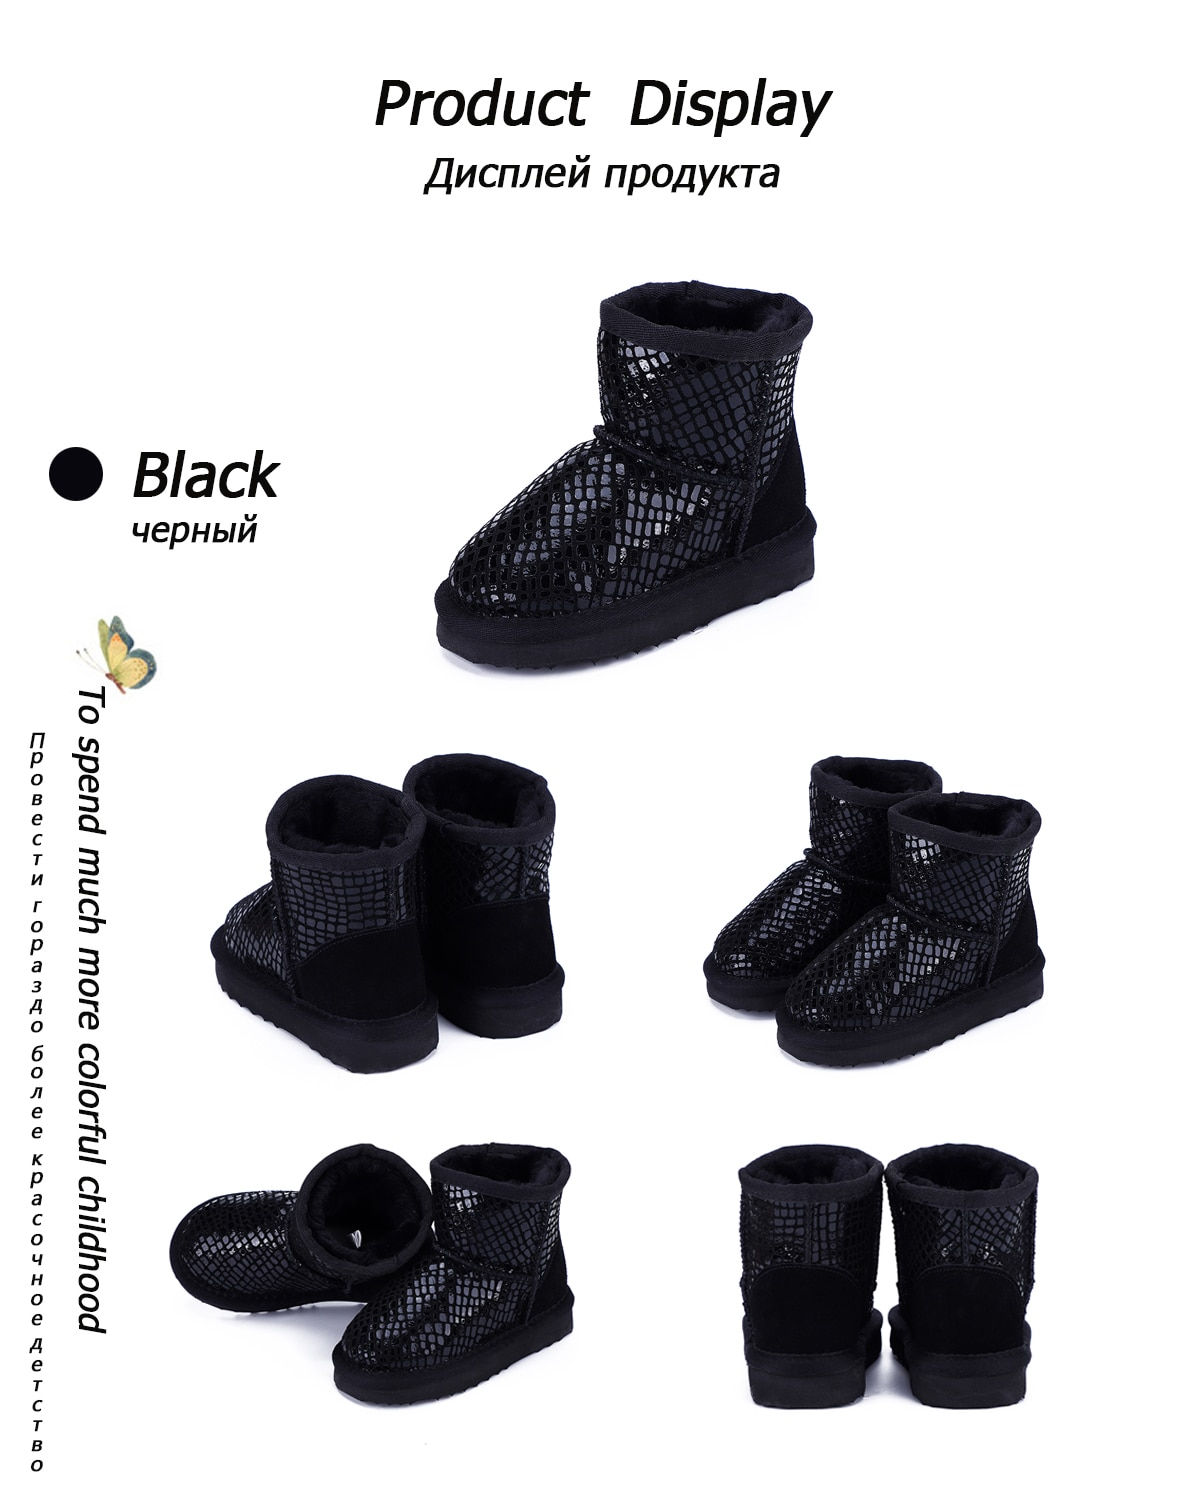 MBR FORCE 2020 New winter children's snow boots boys girls Genuine leather ankle boots warm and Waterproof plush children shoes